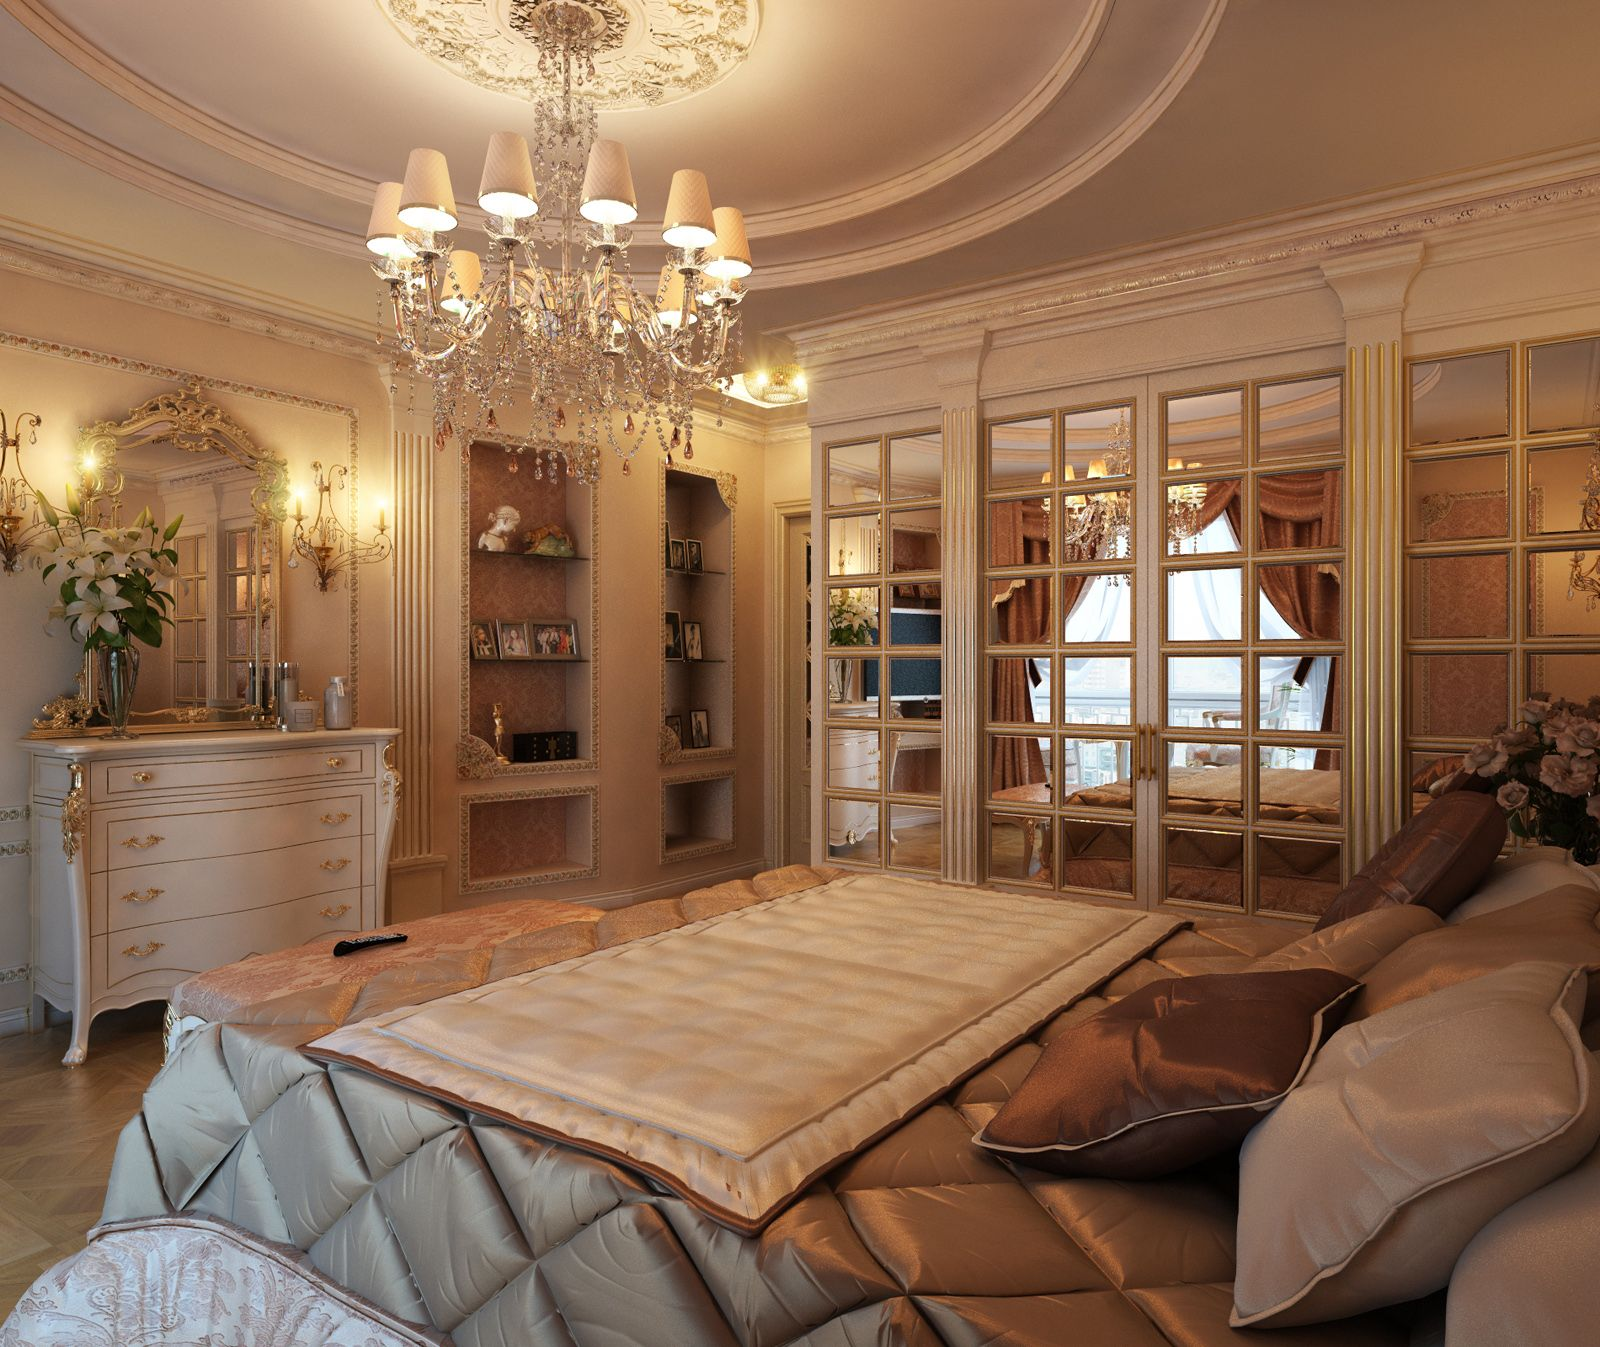 Royal touch In Bedroom | BEDROOMS | Pinterest | Royal bedroom ...